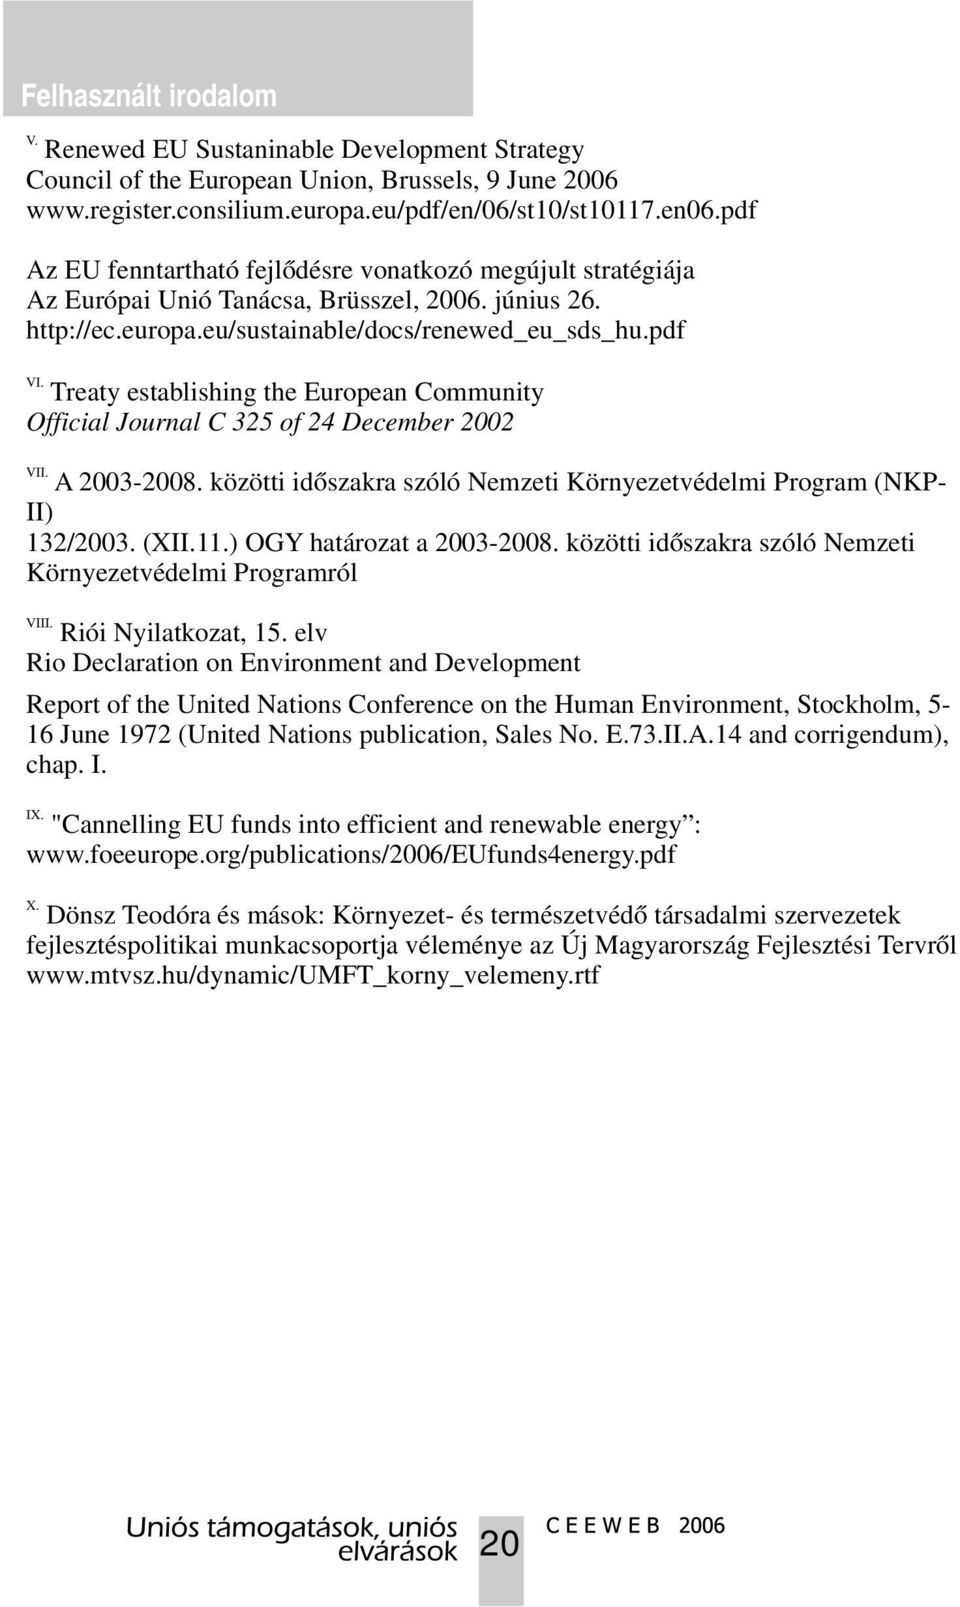 Treaty establishing the European Community Official Journal C 325 of 24 December 2002 VII. A 2003-2008. közötti időszakra szóló Nemzeti Környezetvédelmi Program (NKP- II) 132/2003. (II.11.